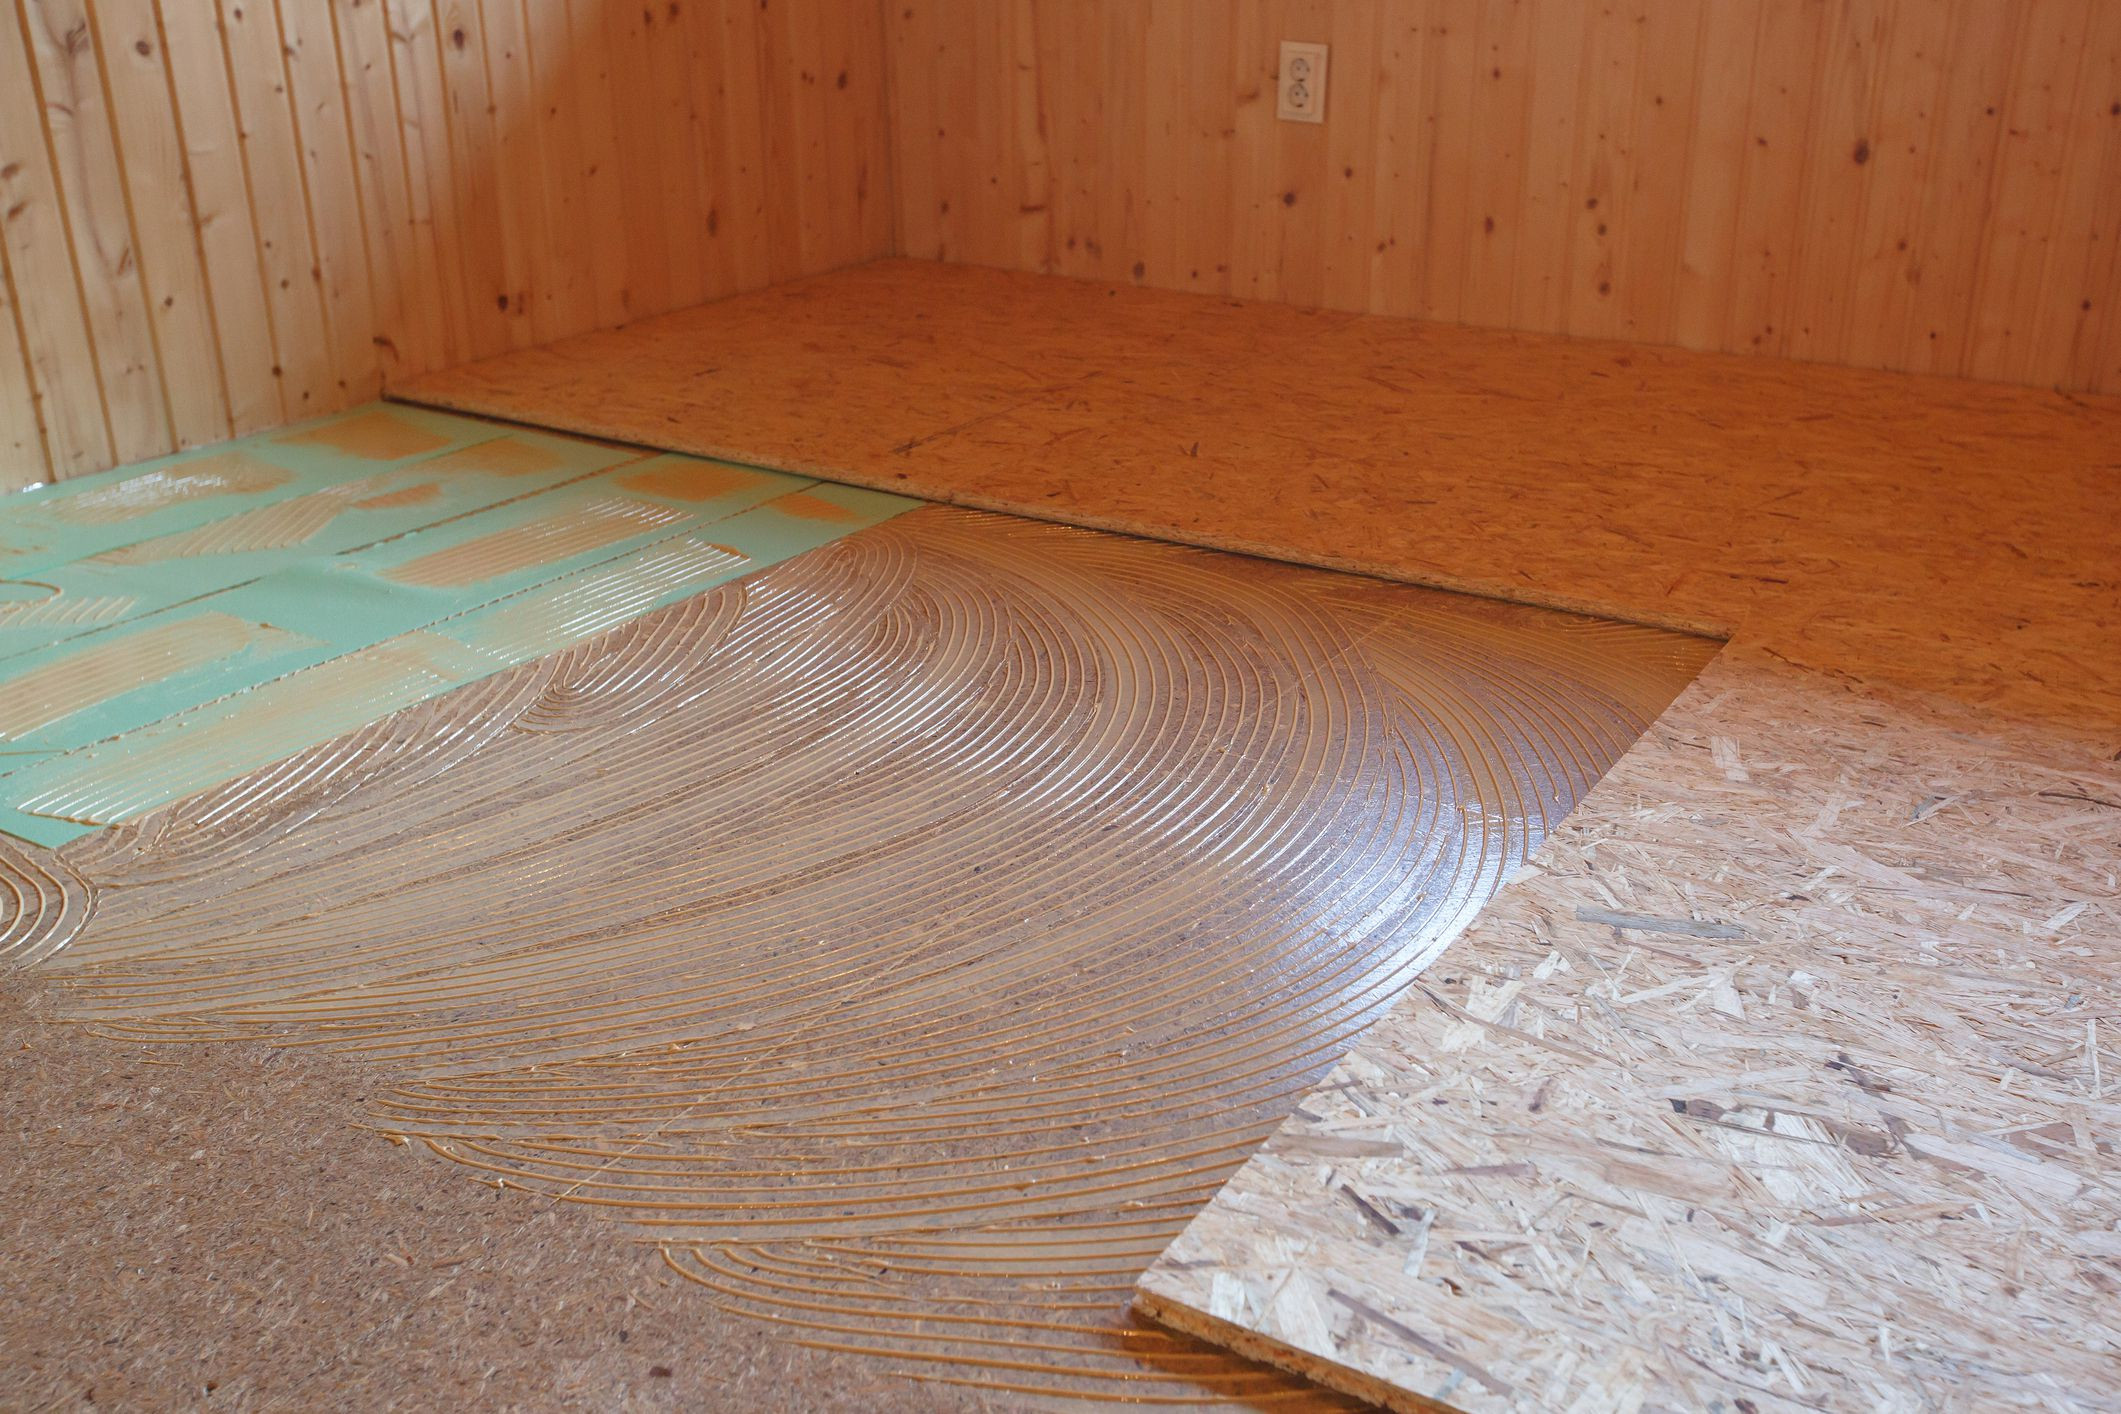 above all hardwood floors of types of subfloor materials in construction projects with regard to gettyimages 892047030 5af5f46fc064710036eebd22